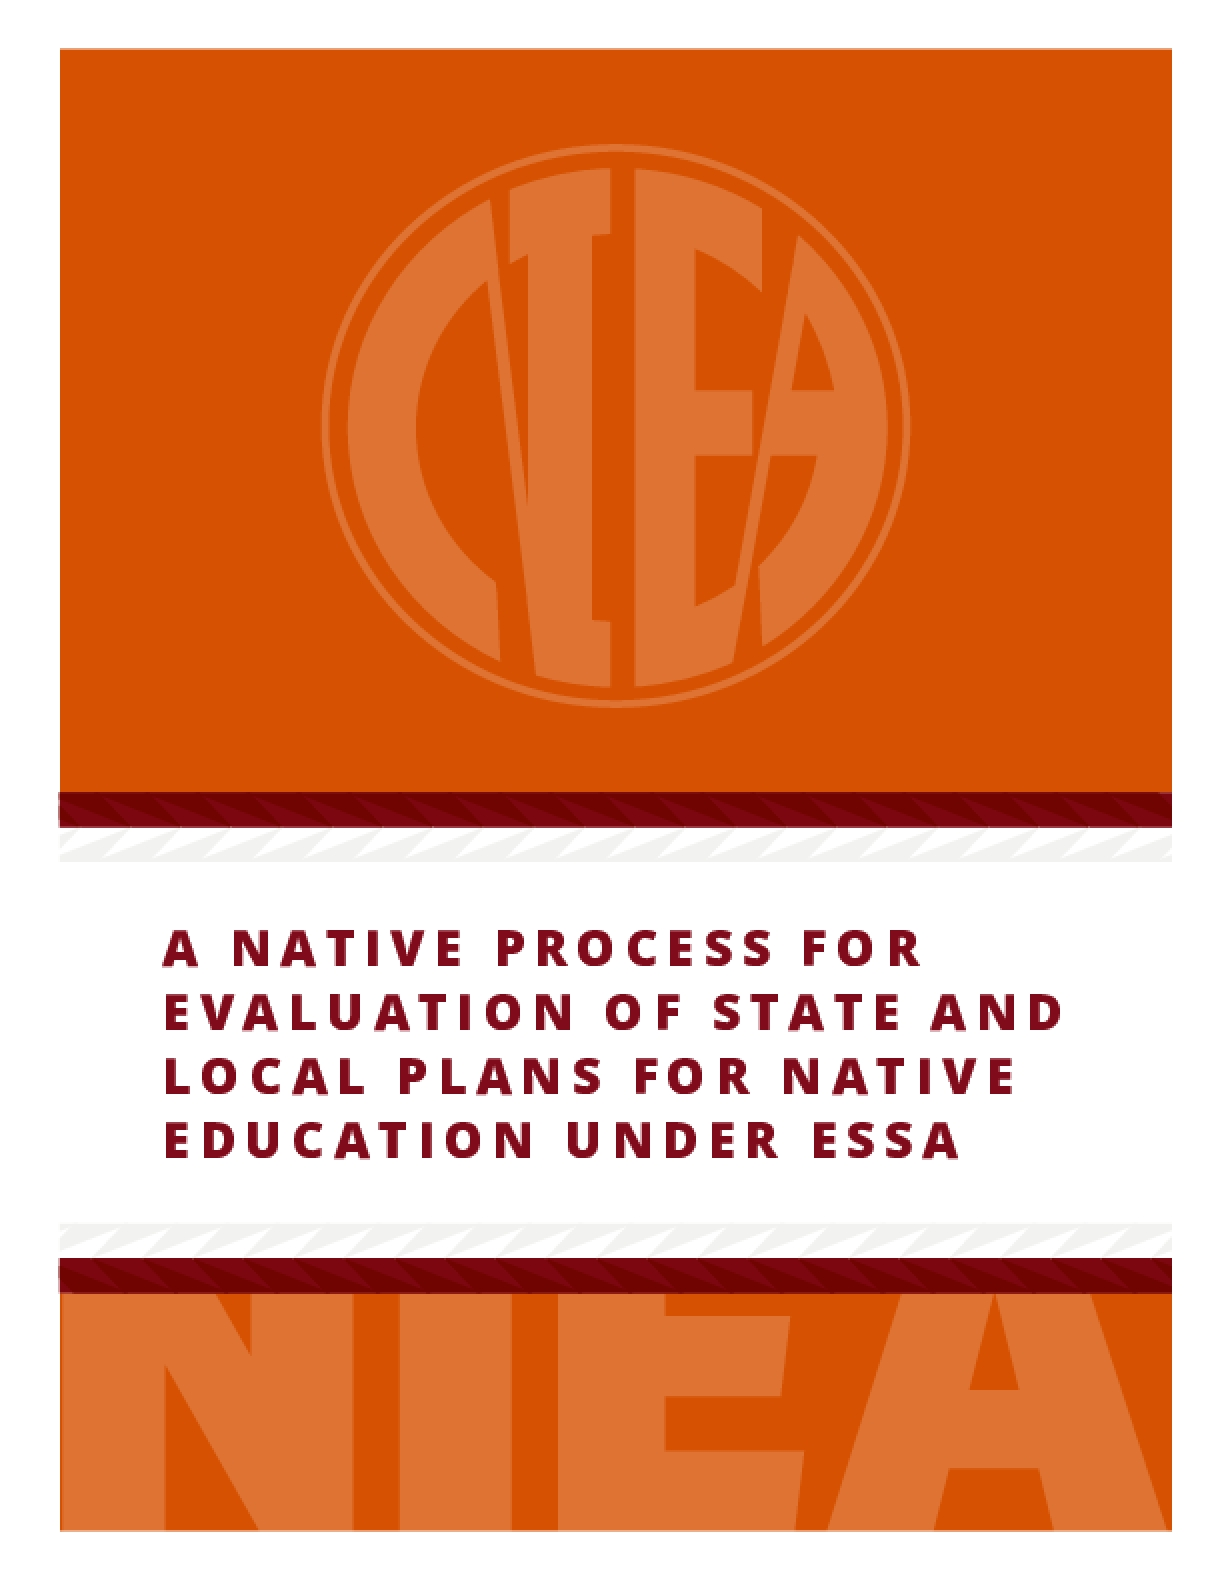 A Native Process for Evaluation of State and Local Plans for Native Education Under ESSA